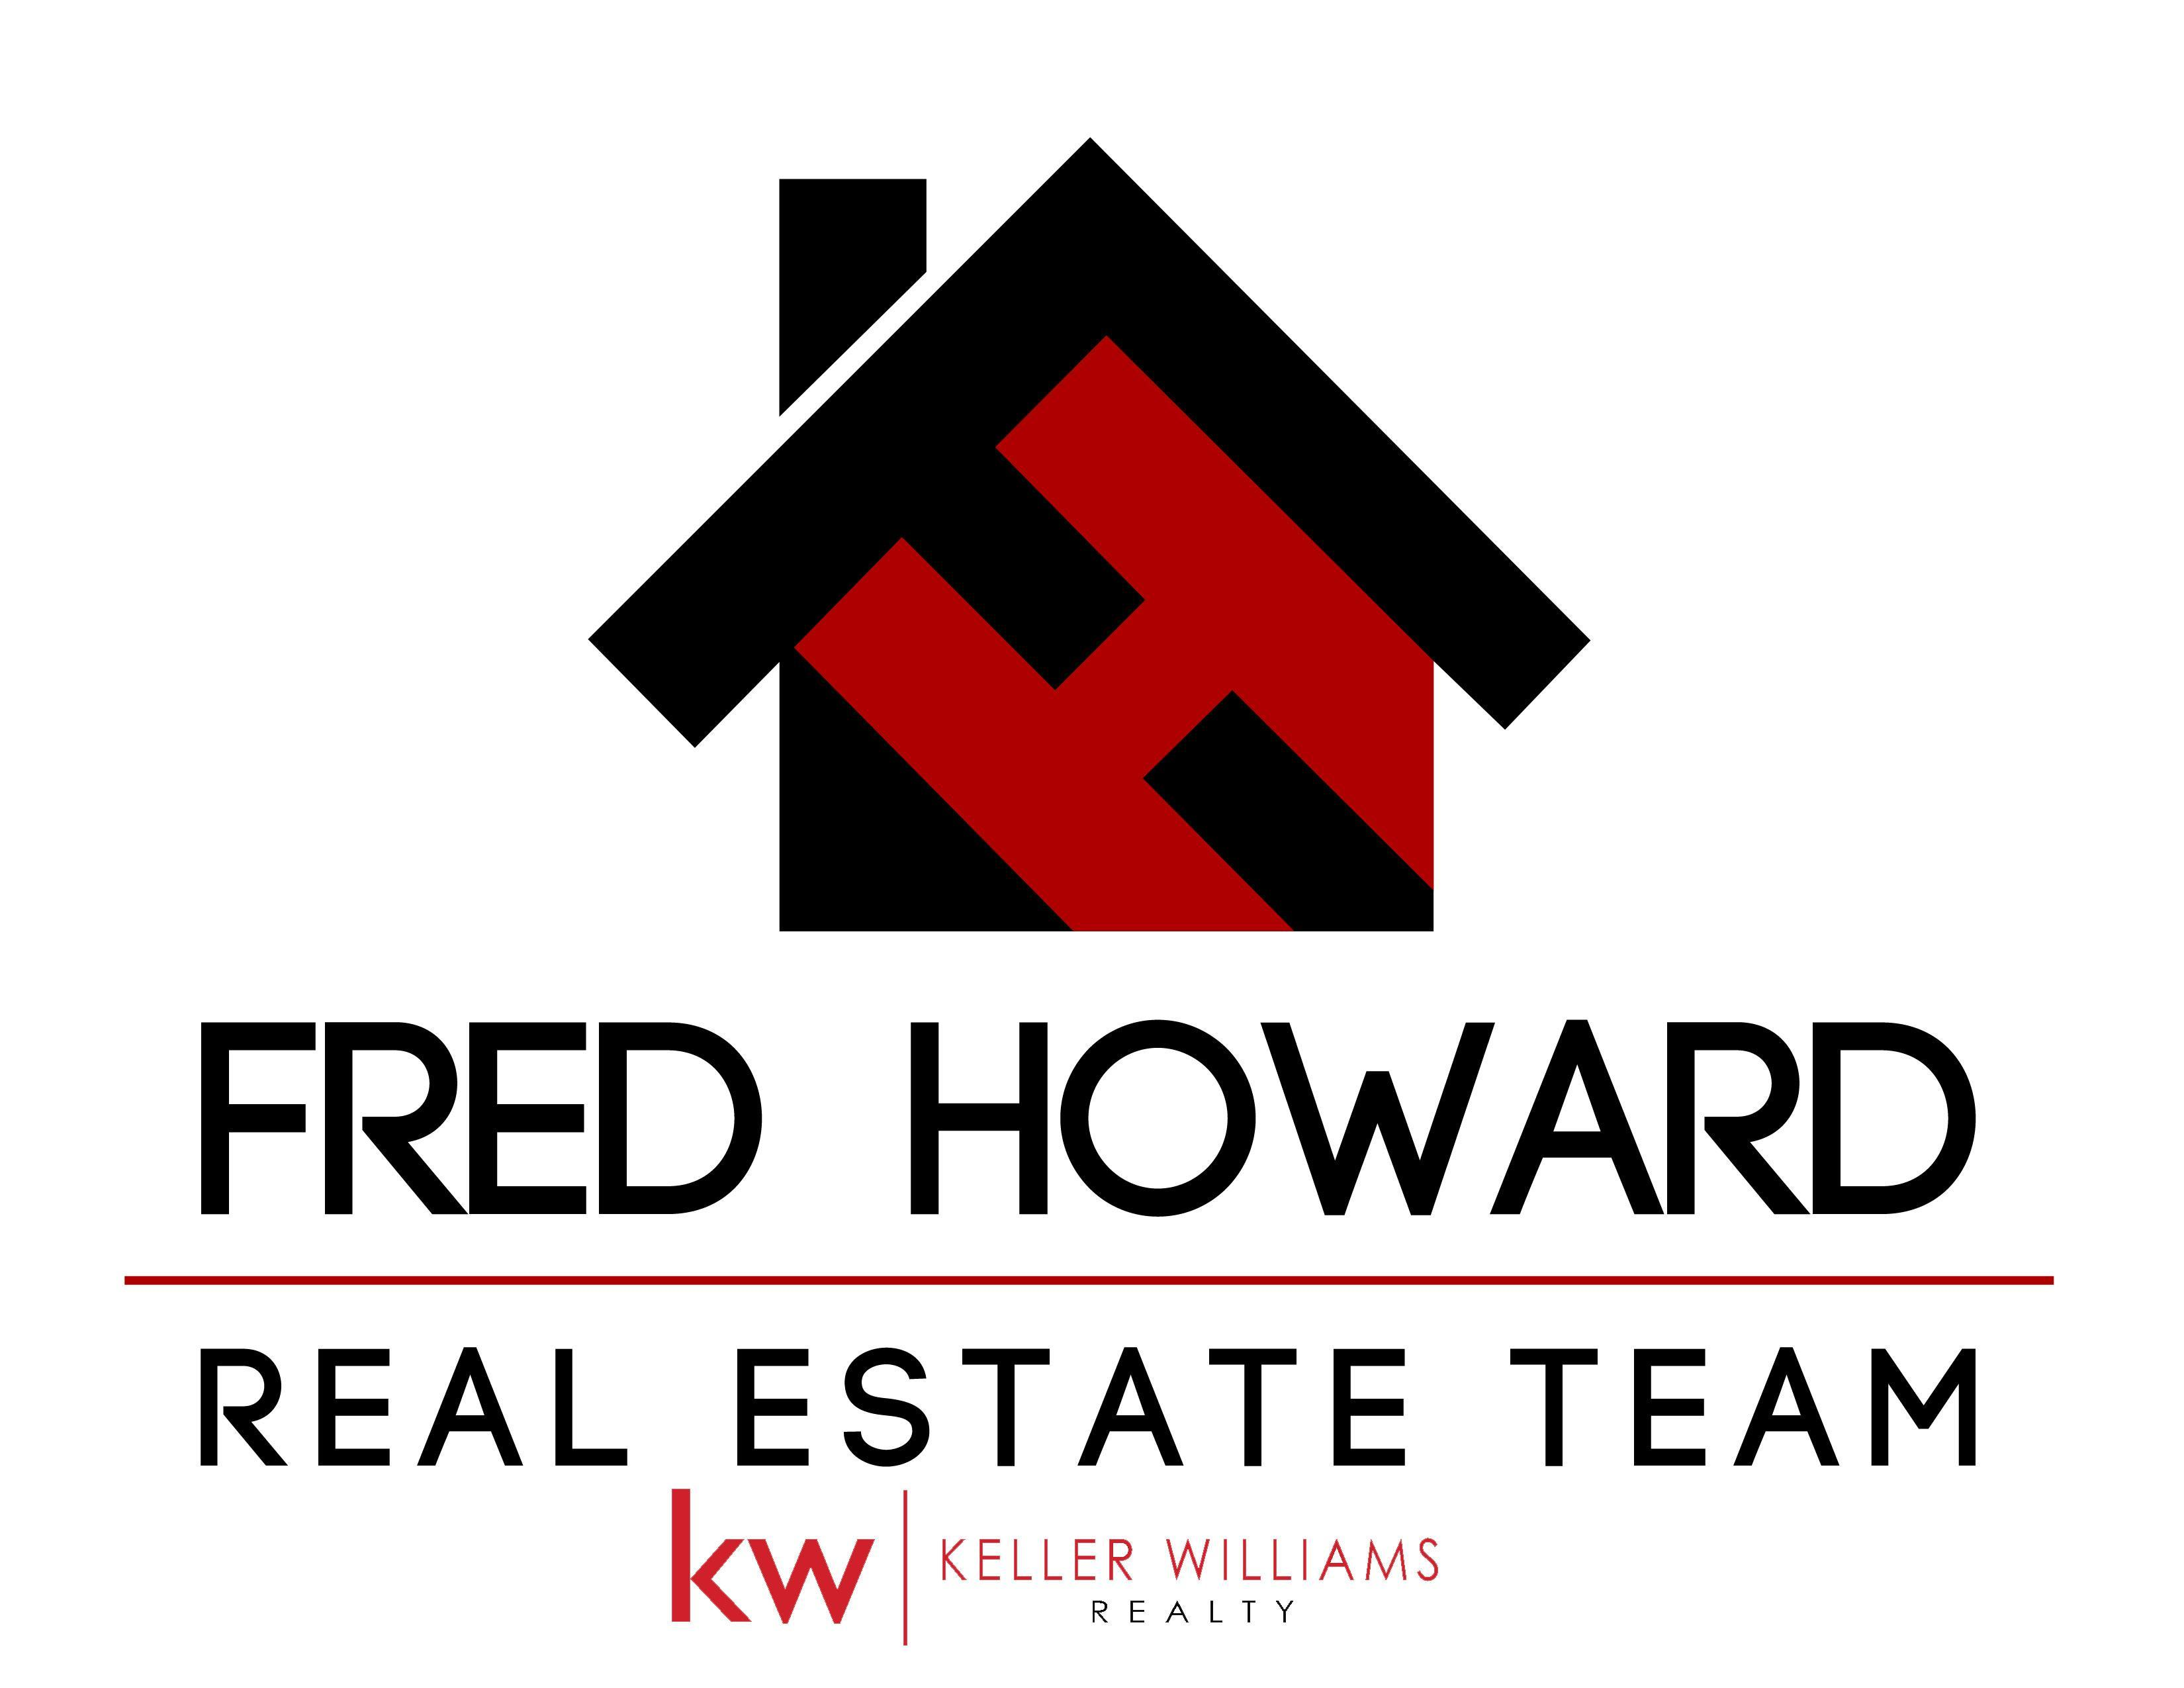 Frederick Howard Real Estate Team at KW